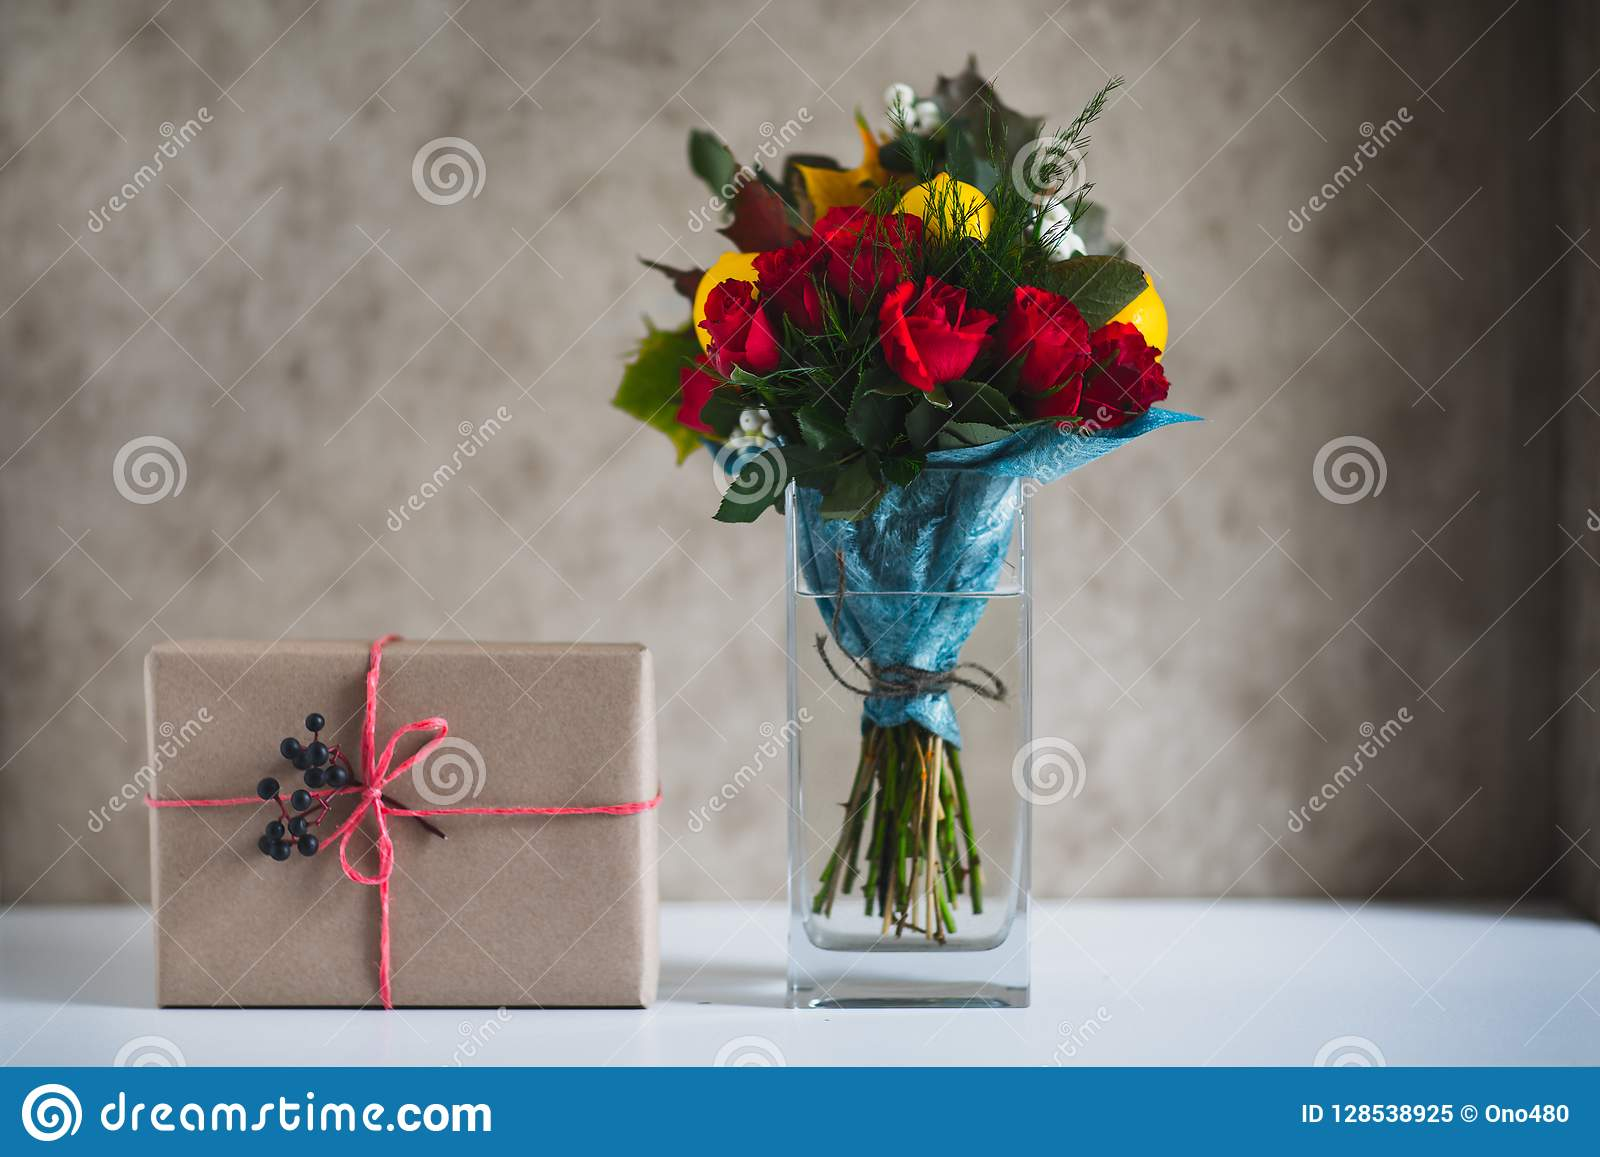 Gift Box With Flowers Stock Image Image Of Gift Heart 128538925